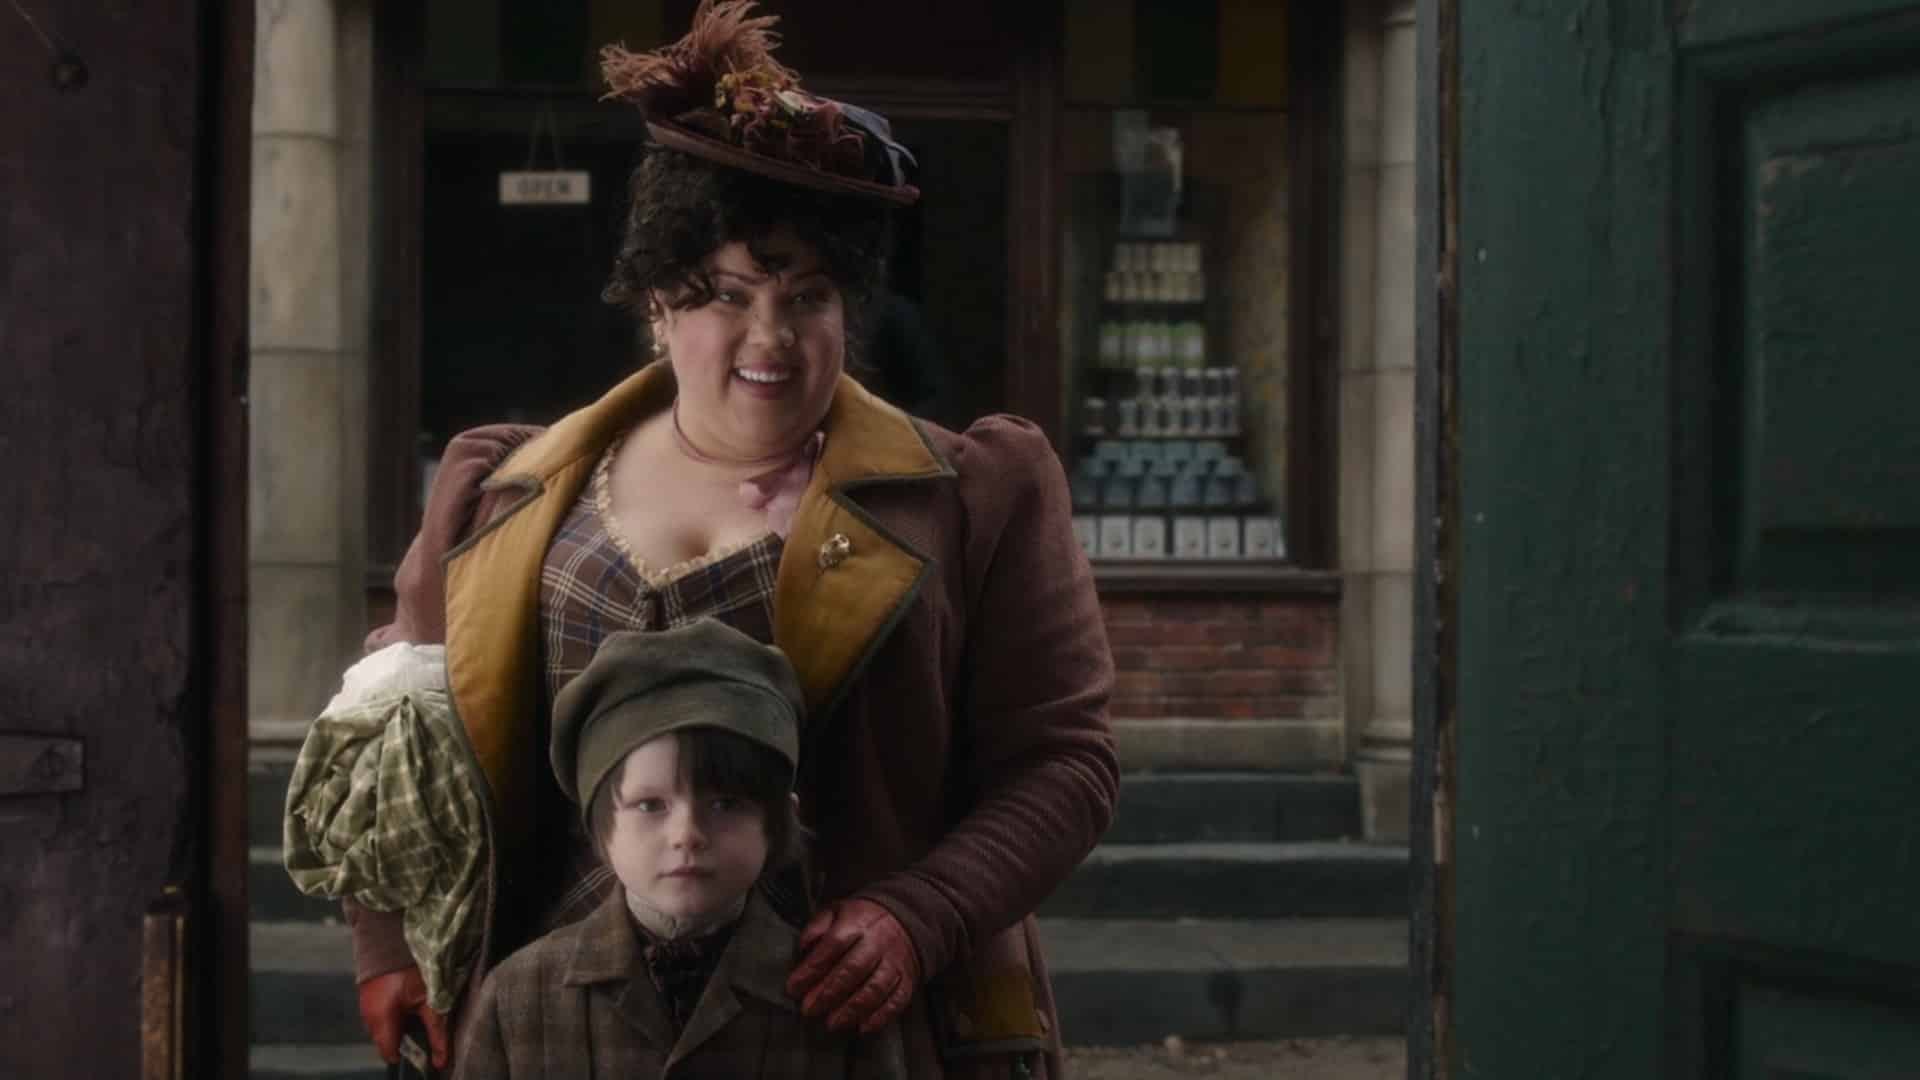 Desiree (Ella Smith) with her son, looking for the opportunity to stay at the Orphanage